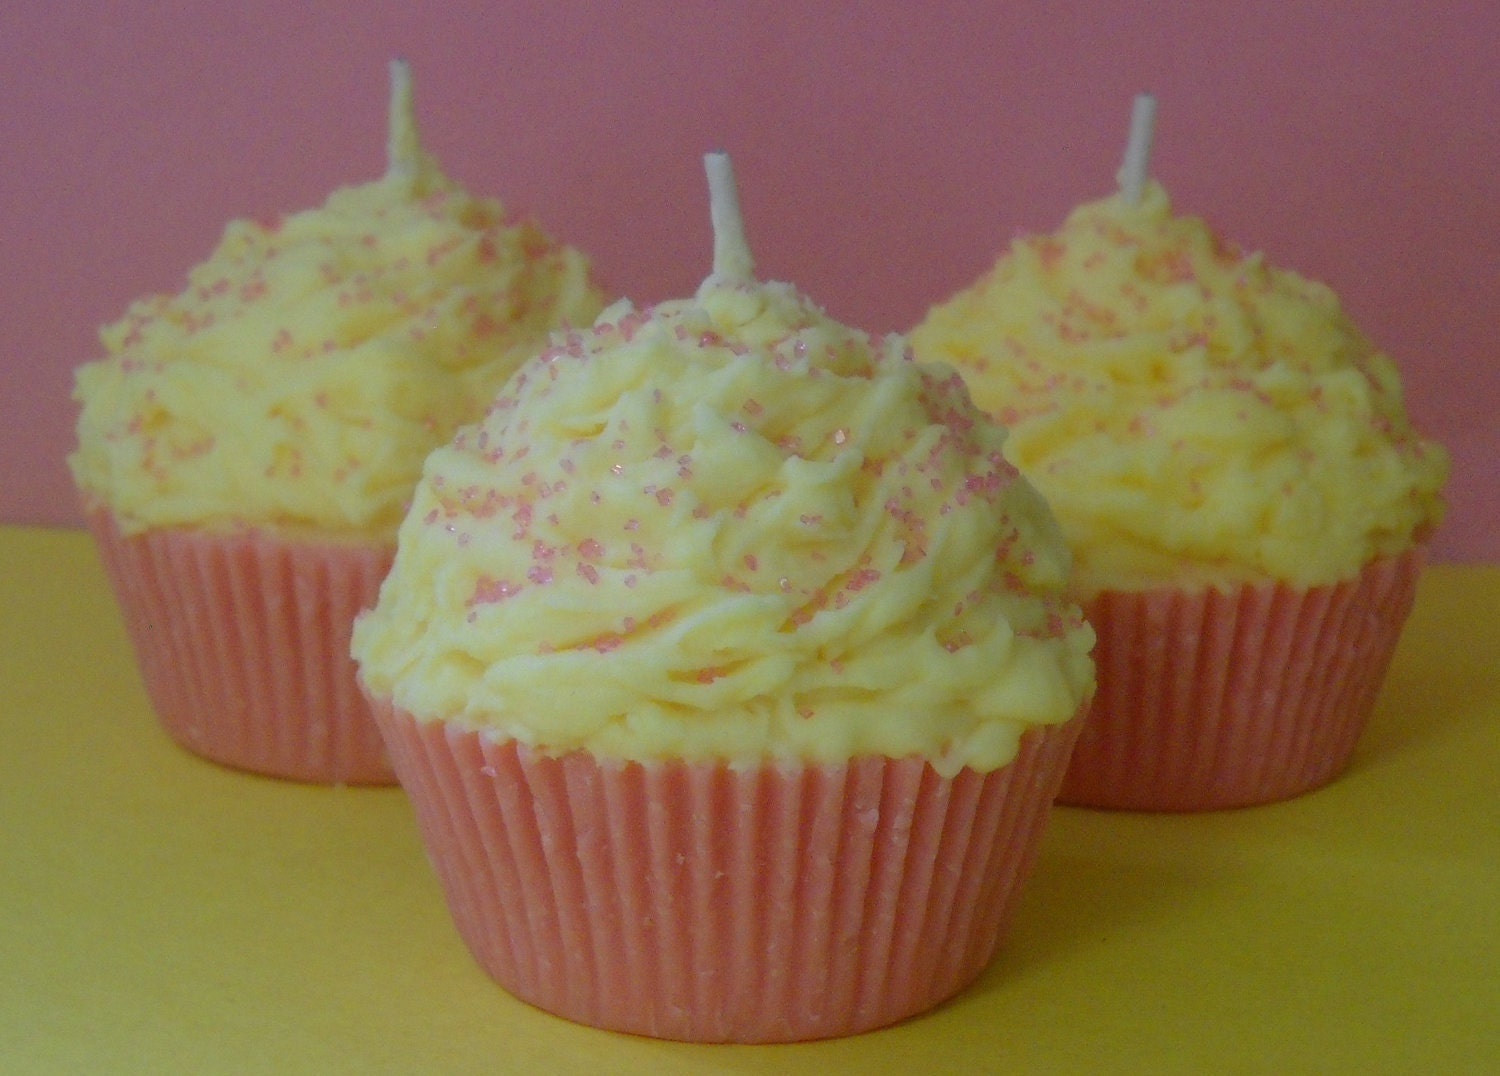 Cupcake Candle, Pink Lemonade Scented, Soy Wax - Pookaberrys